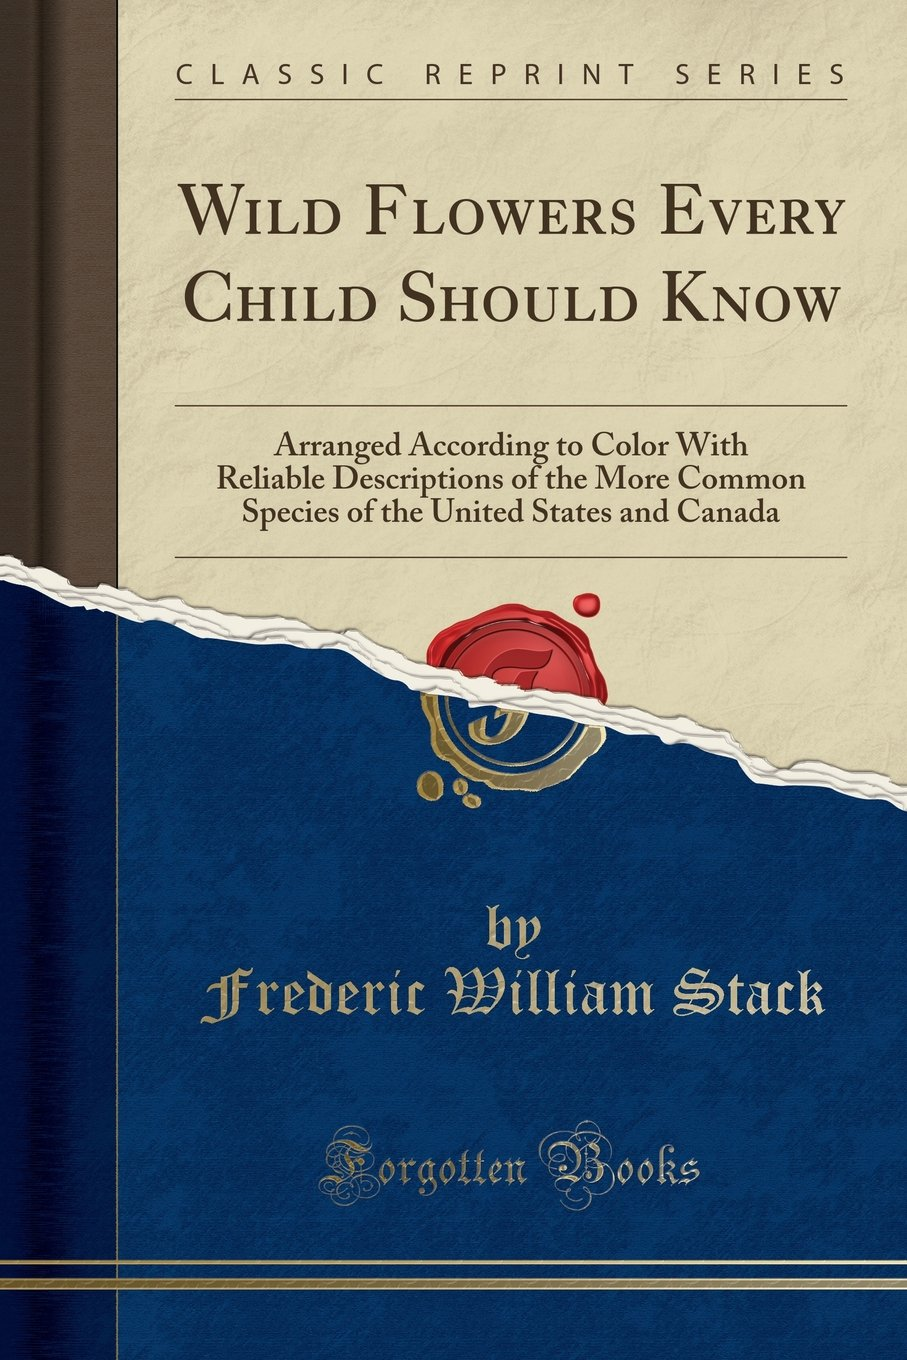 Download Wild Flowers Every Child Should Know: Arranged According to Color With Reliable Descriptions of the More Common Species of the United States and Canada (Classic Reprint) pdf